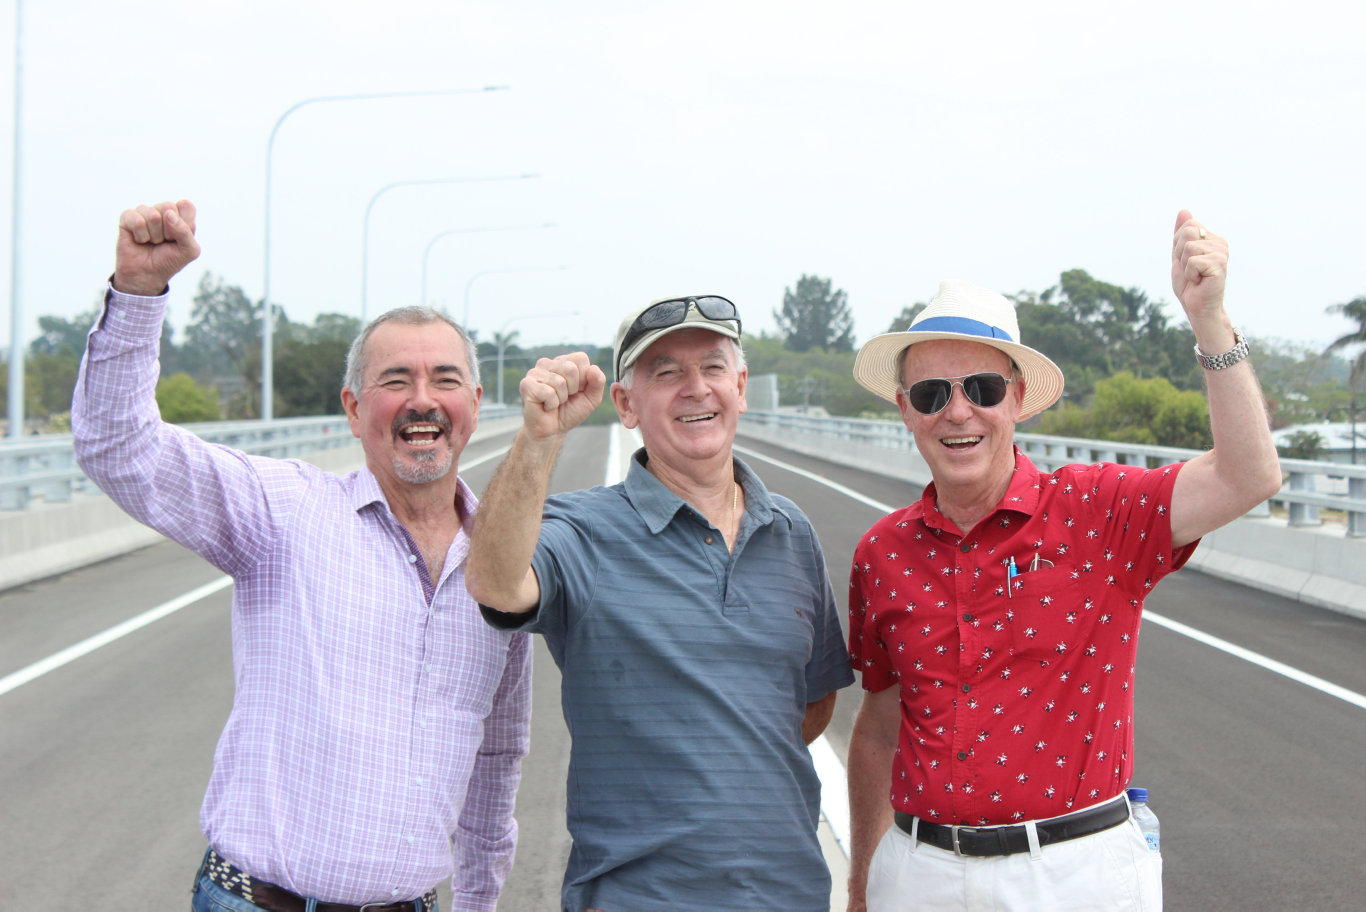 Chris Gulaptis, Ron Bell and Des Harvey celebrate at the new Grafton bridge opening on 12/12/19.